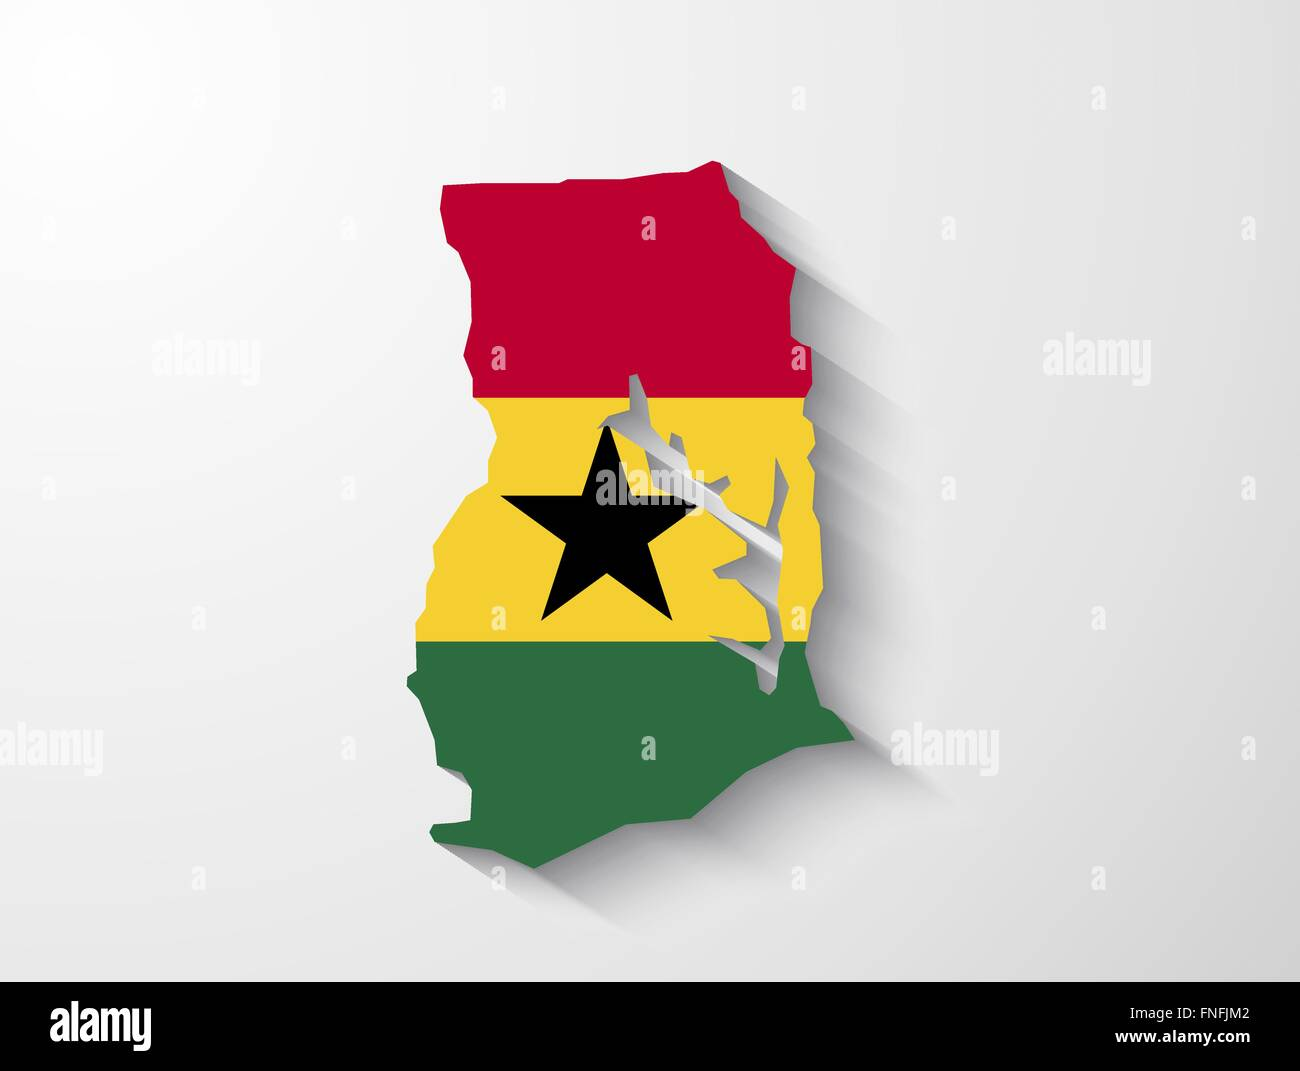 Ghana country map with flag and shadow effect presentation - Stock Vector